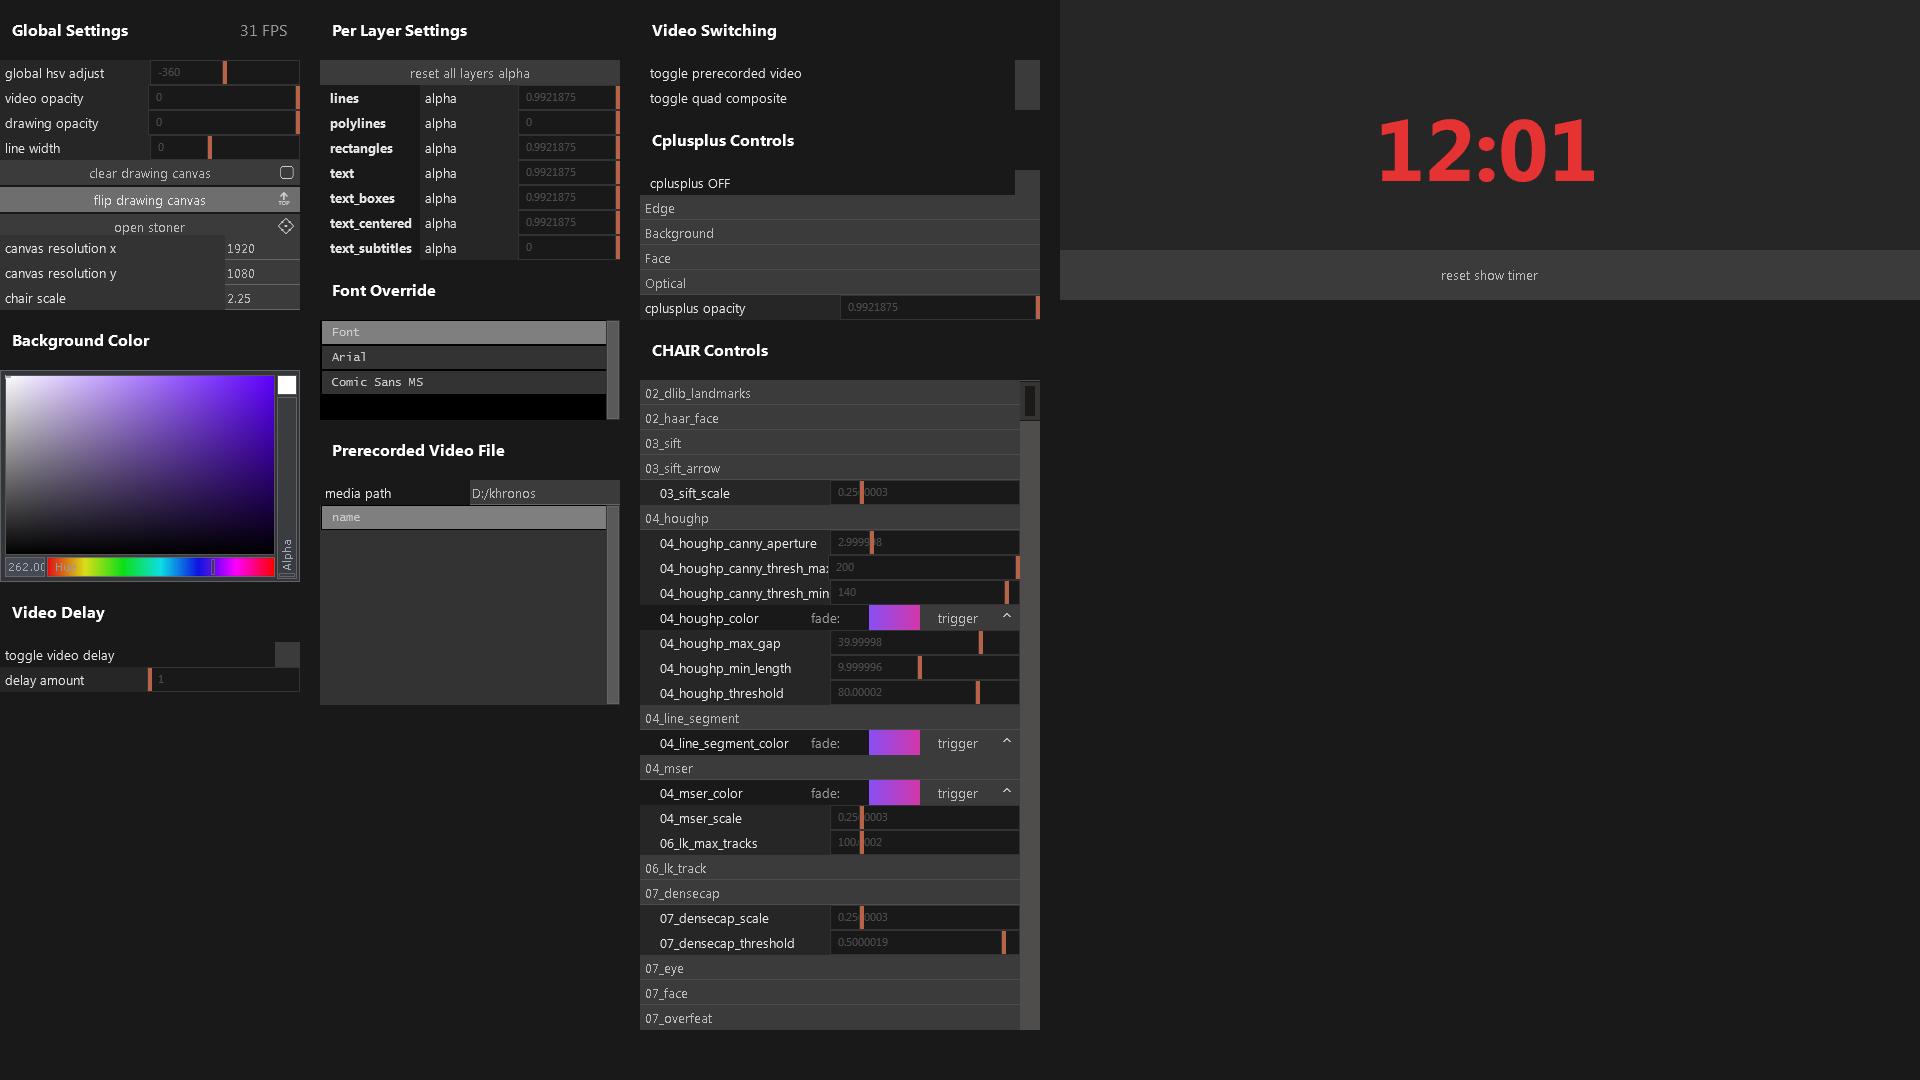 Custom TouchDesigner interface, which builds itself based on a set of parameters received upon load